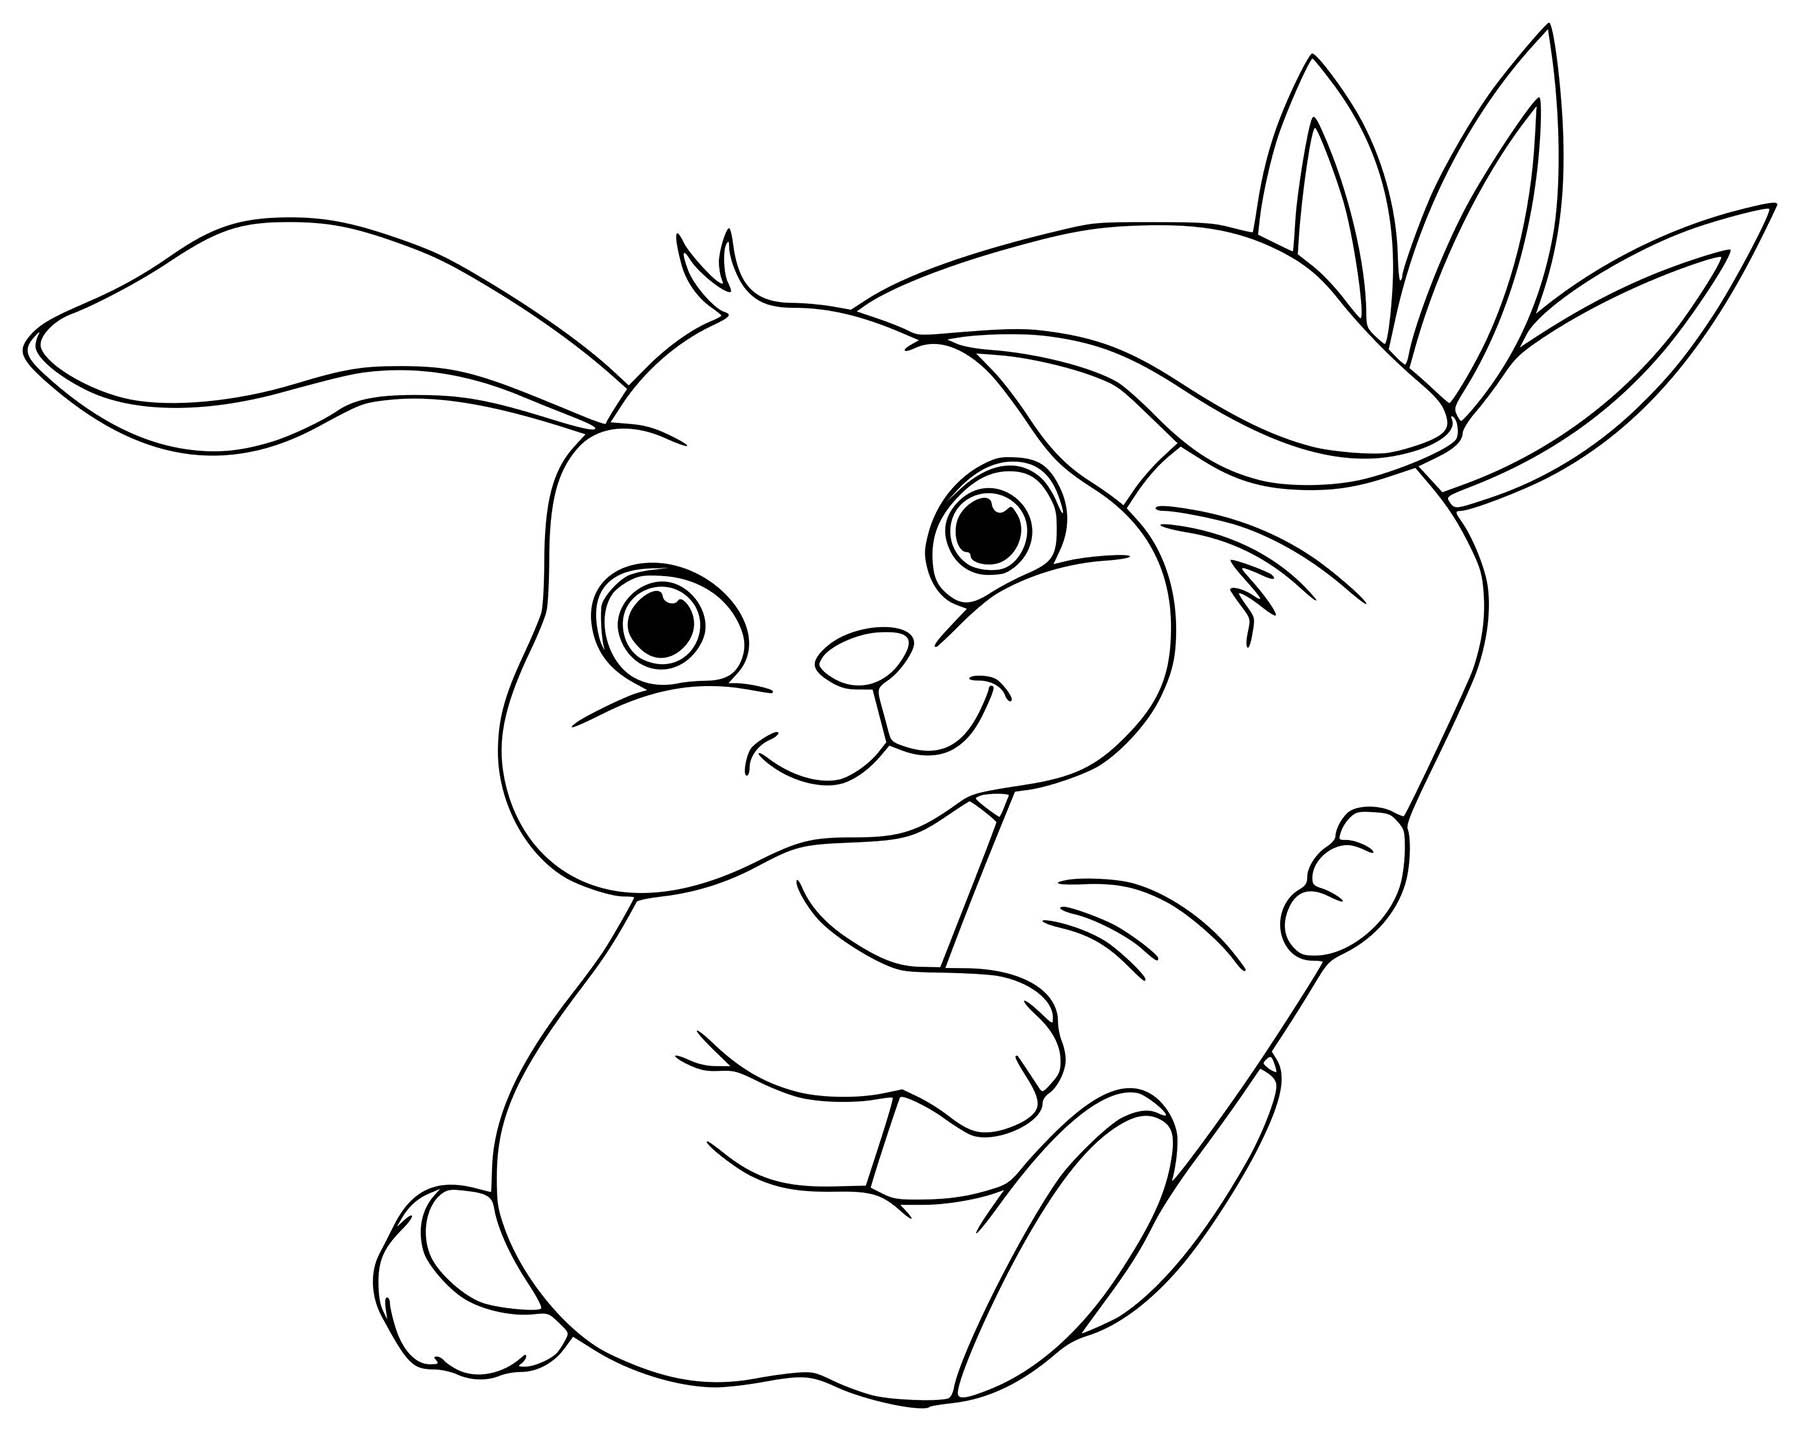 Funny Rabbit coloring page for children